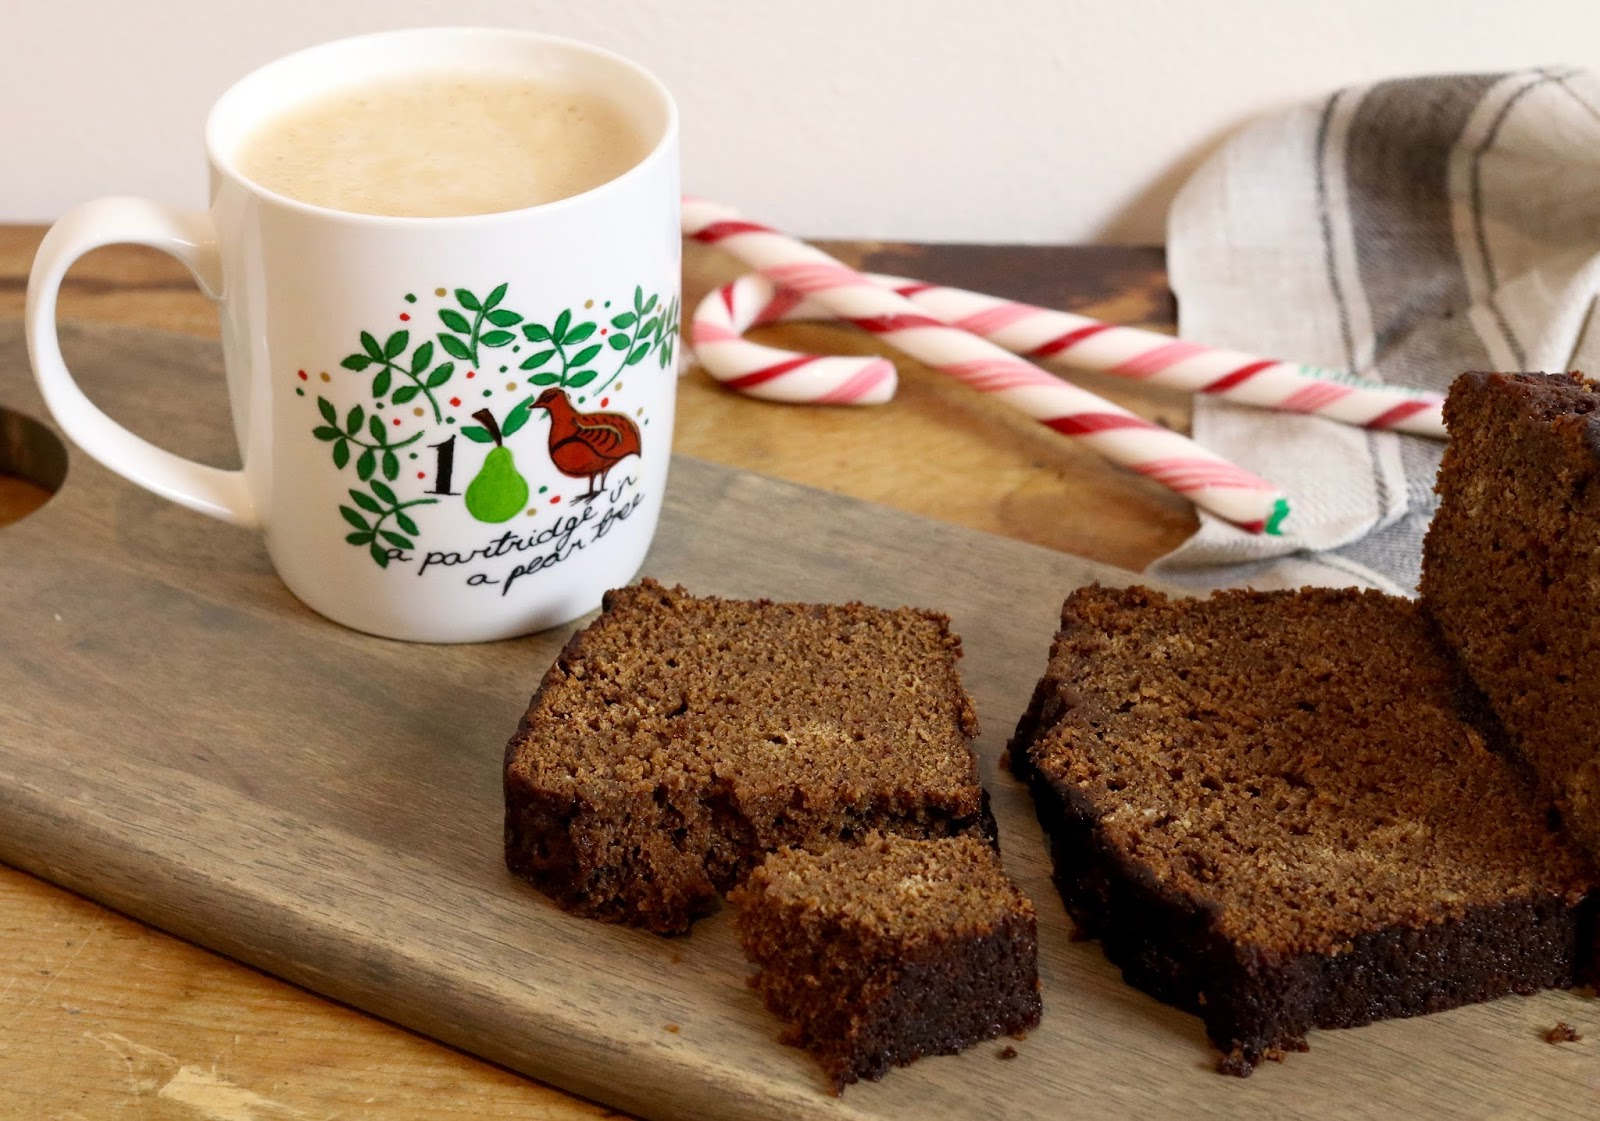 Festive-breakfas-ideas-gingerbread-loaf-coffee-and-cake